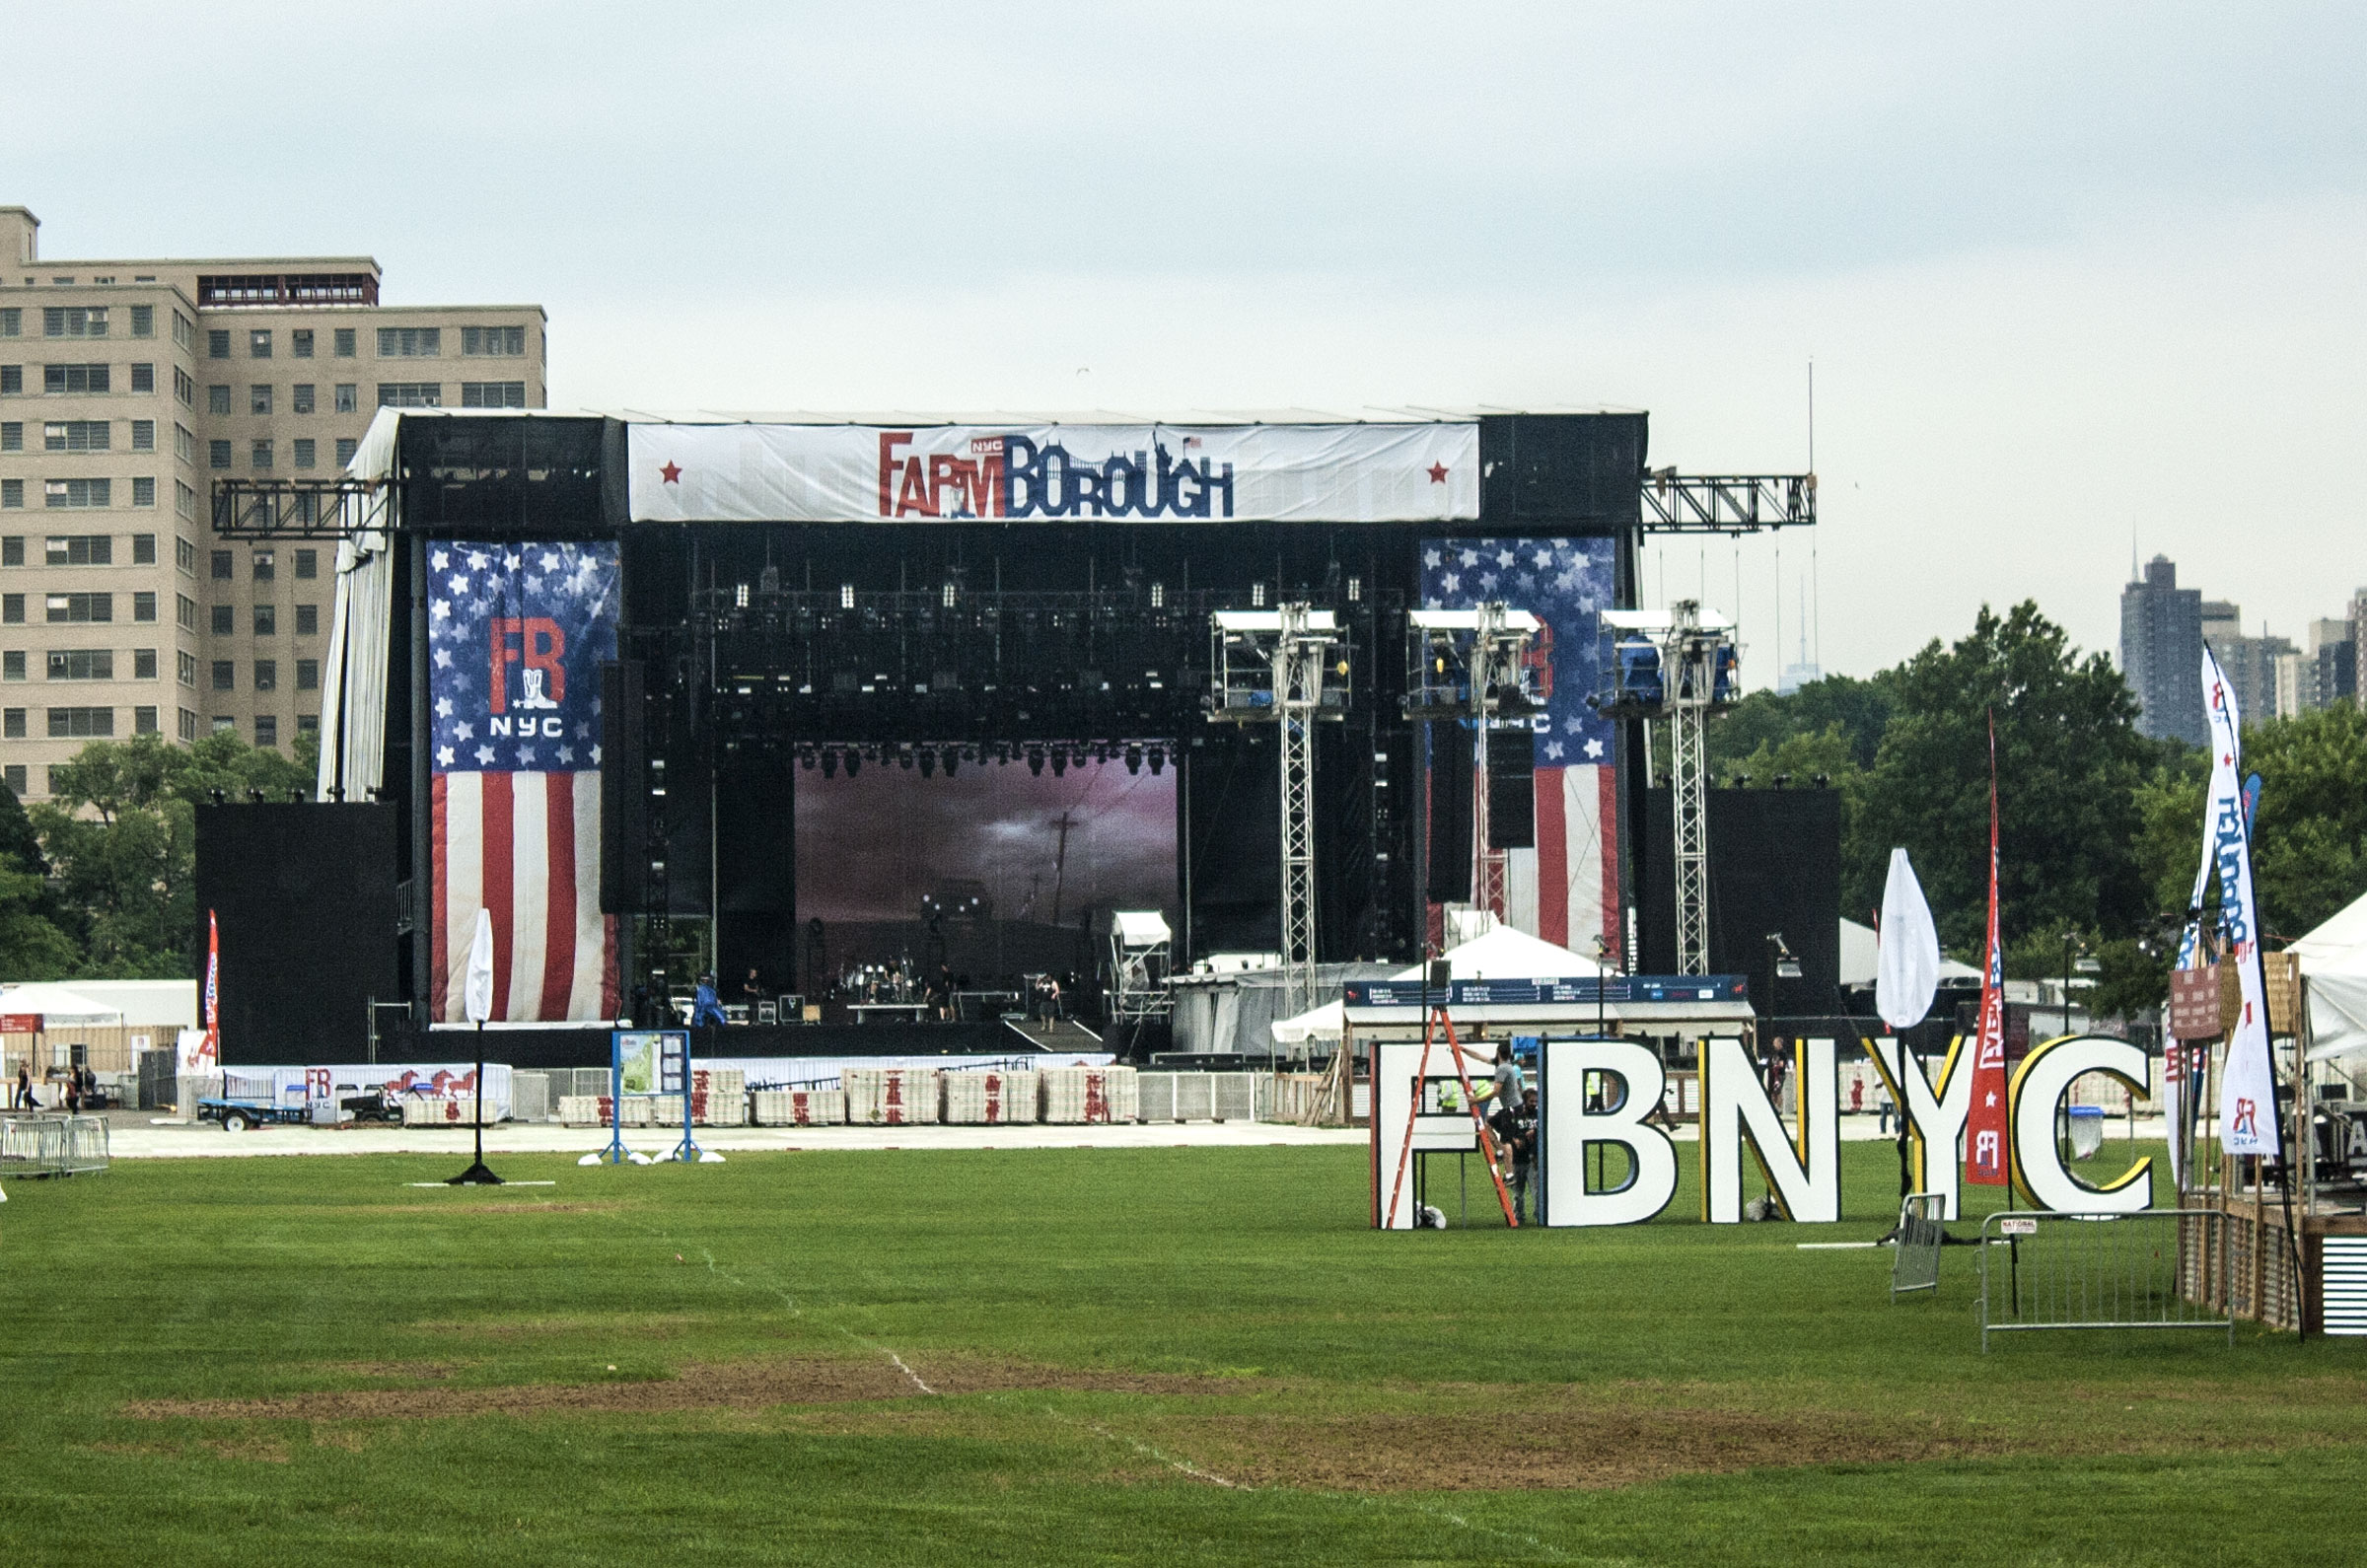 Another view of Main Stage